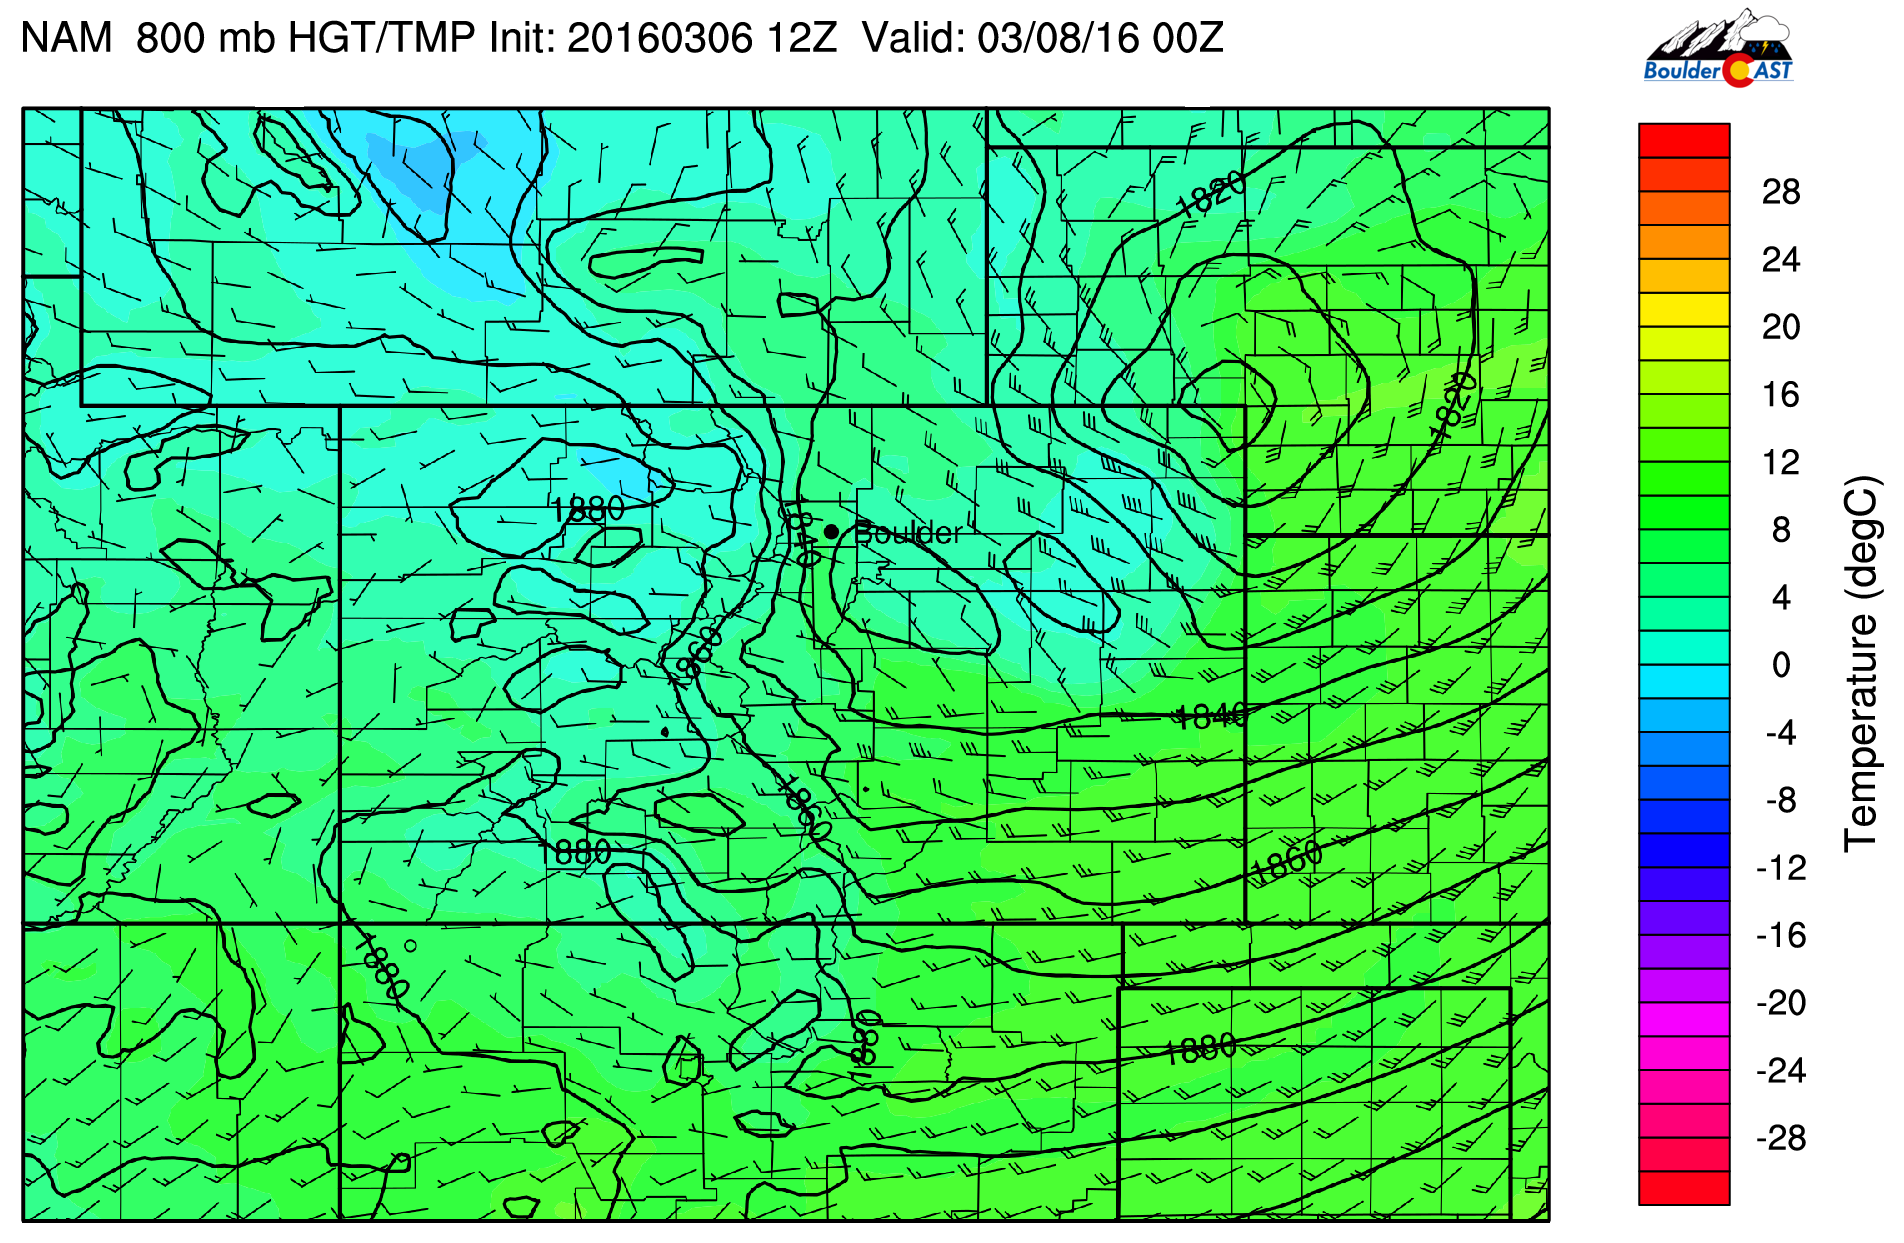 NAM surface temperature and sea-level pressure and surface wind barbs for this evening